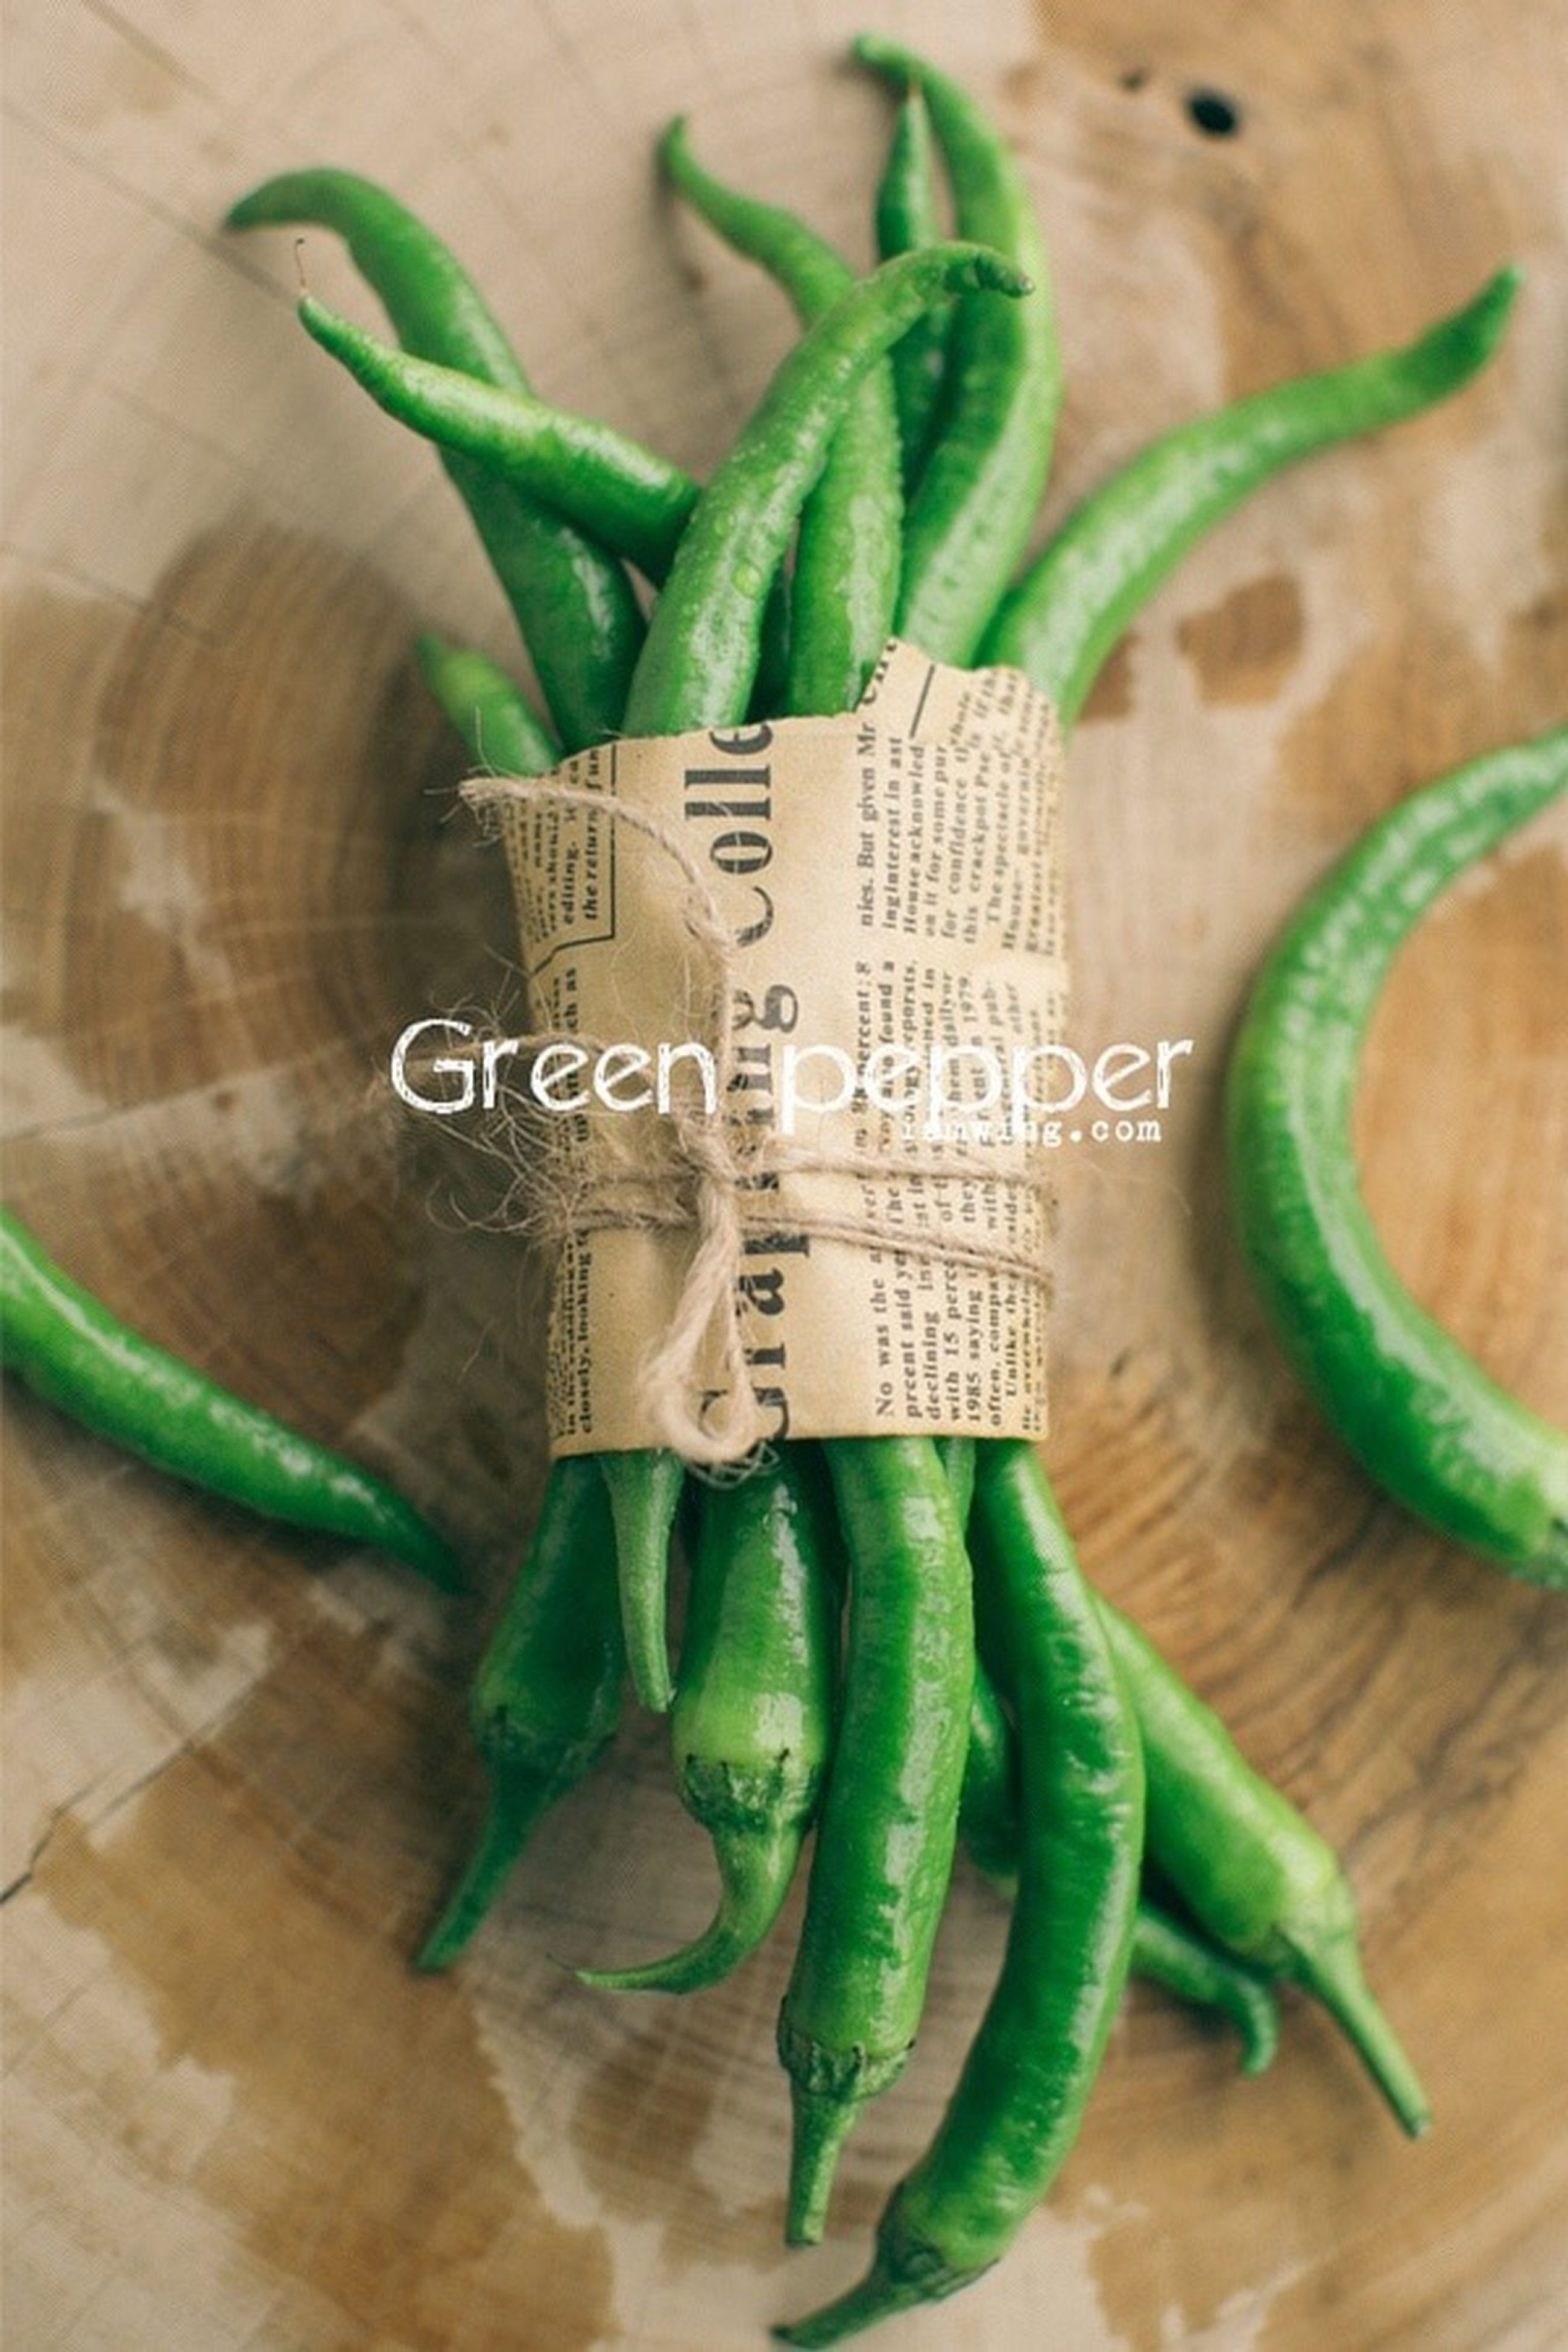 food and drink, indoors, freshness, healthy eating, food, table, still life, vegetable, green color, close-up, high angle view, selective focus, text, leaf, variation, green, focus on foreground, wood - material, healthy lifestyle, organic